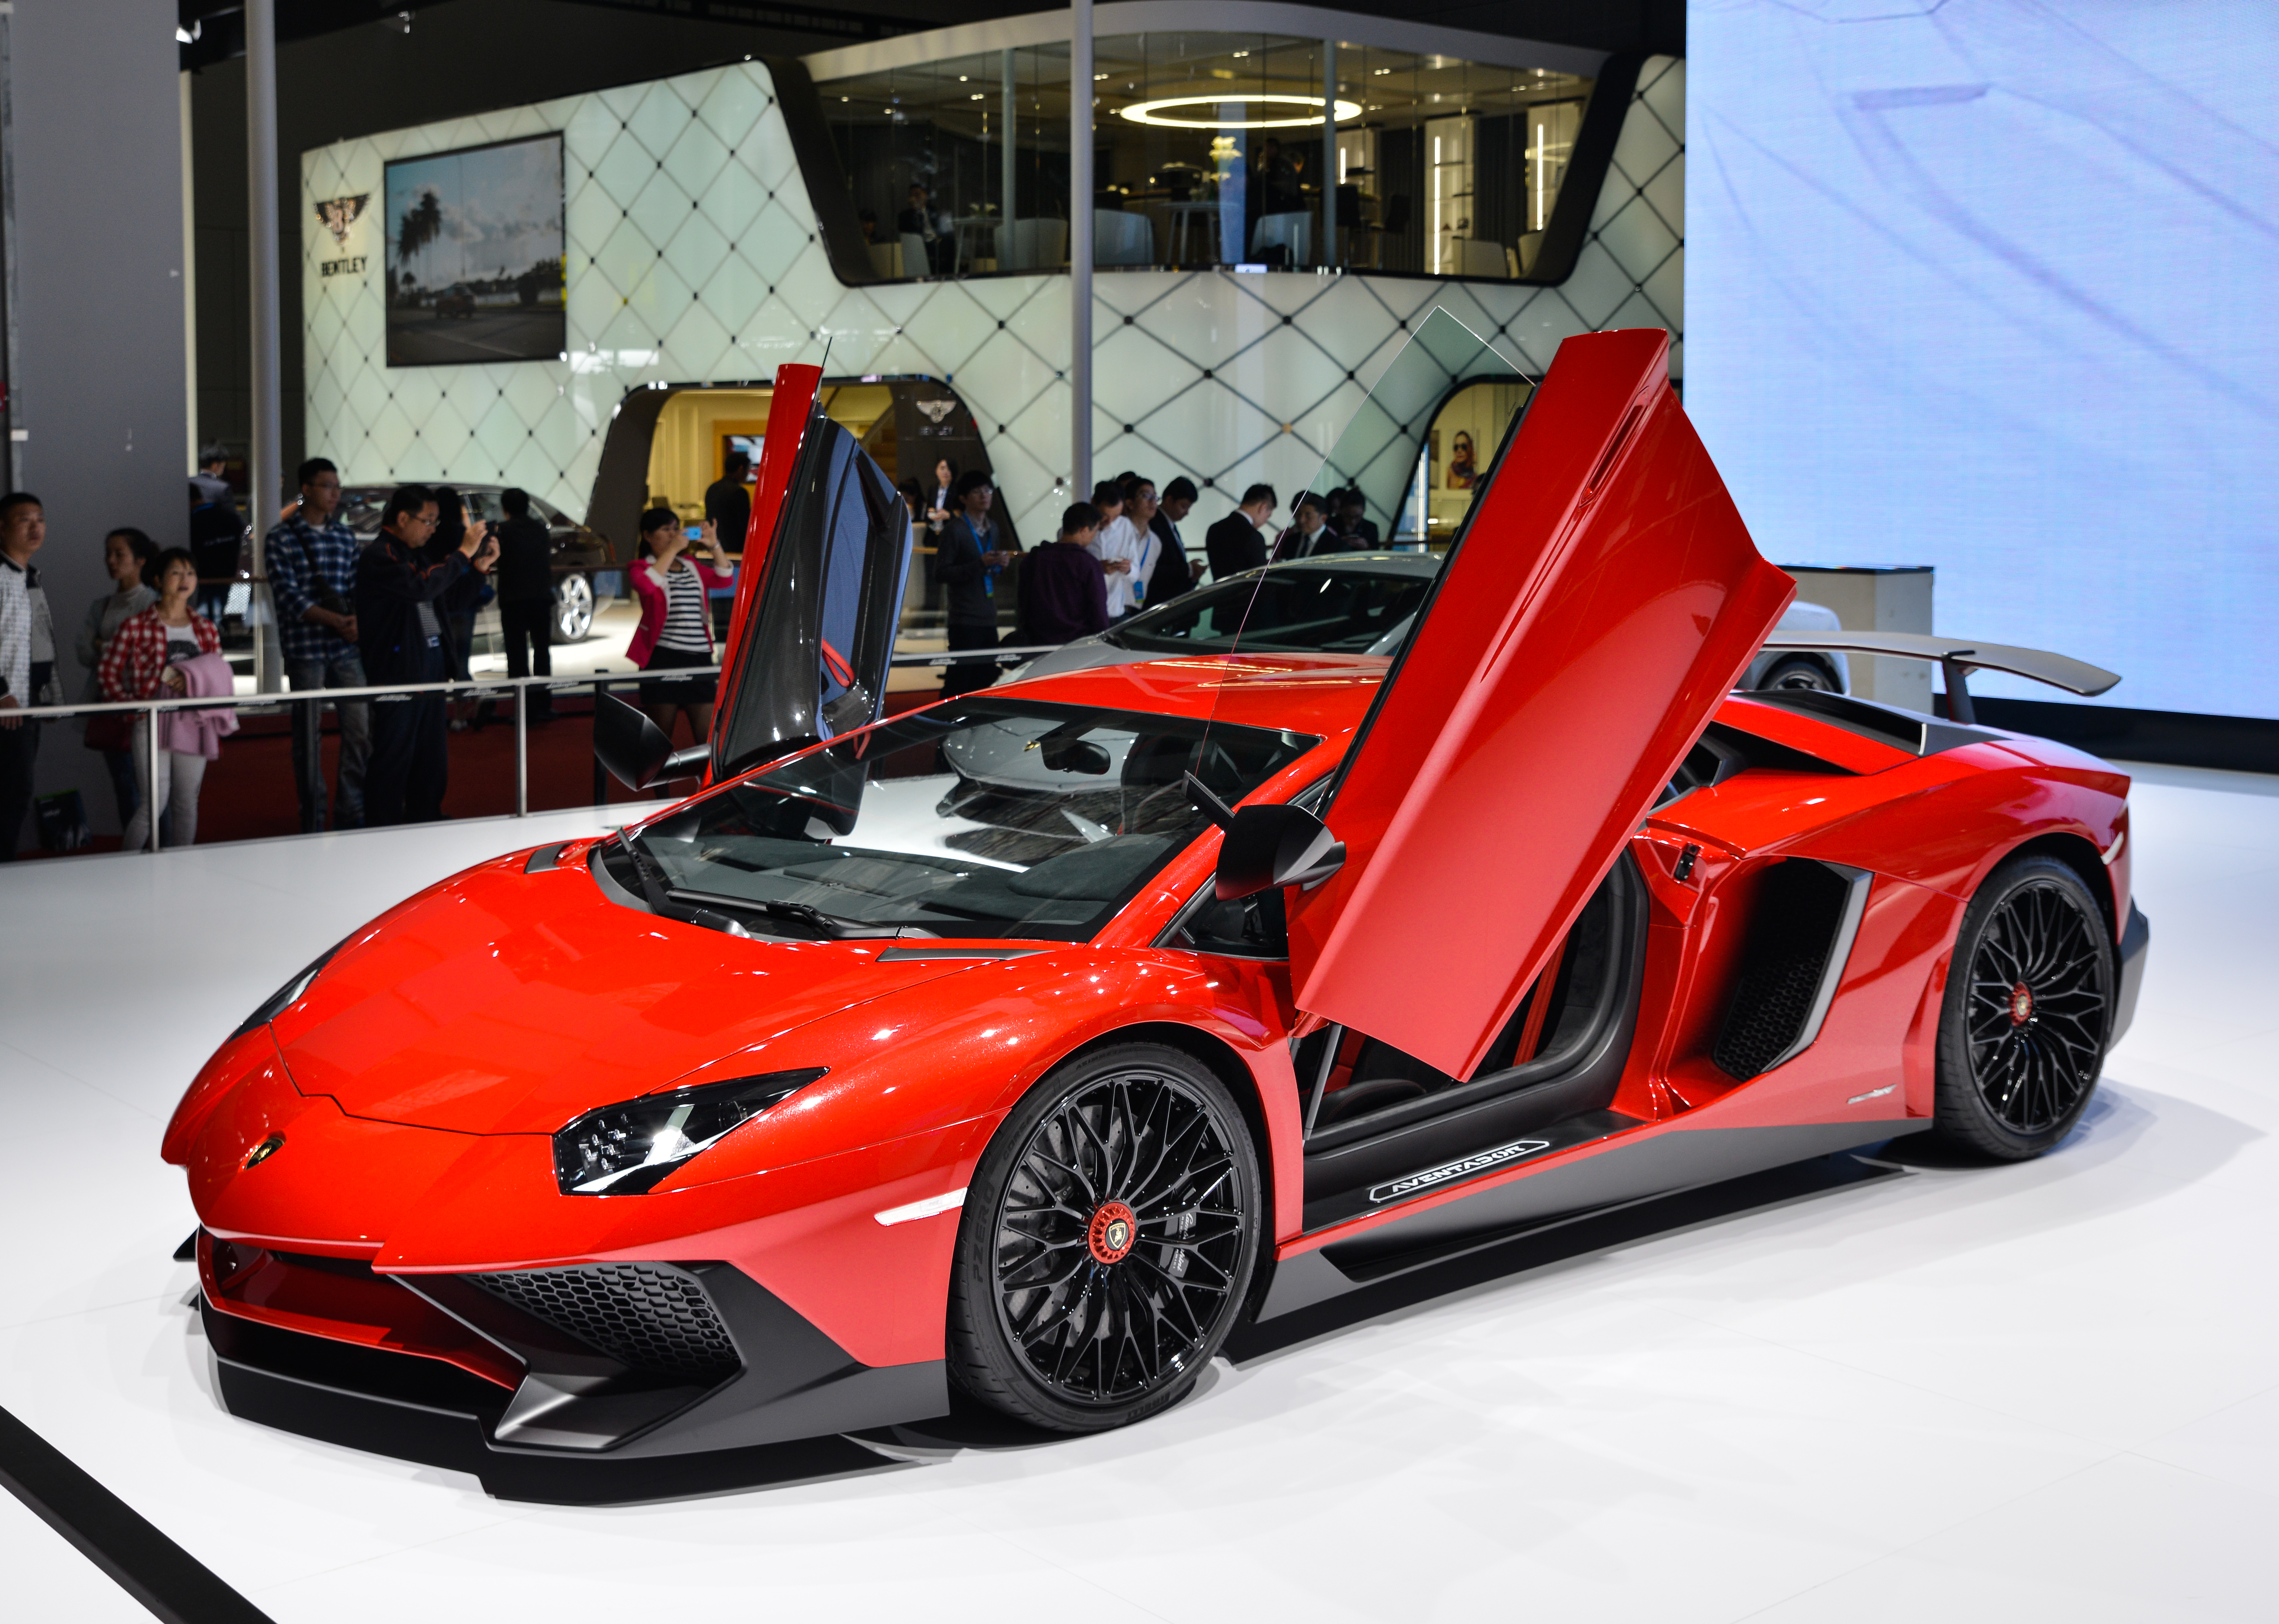 sales and build ca buy autotrader the examples already newsfeatures have of centenario you lamborghini can car all them t a sold will been